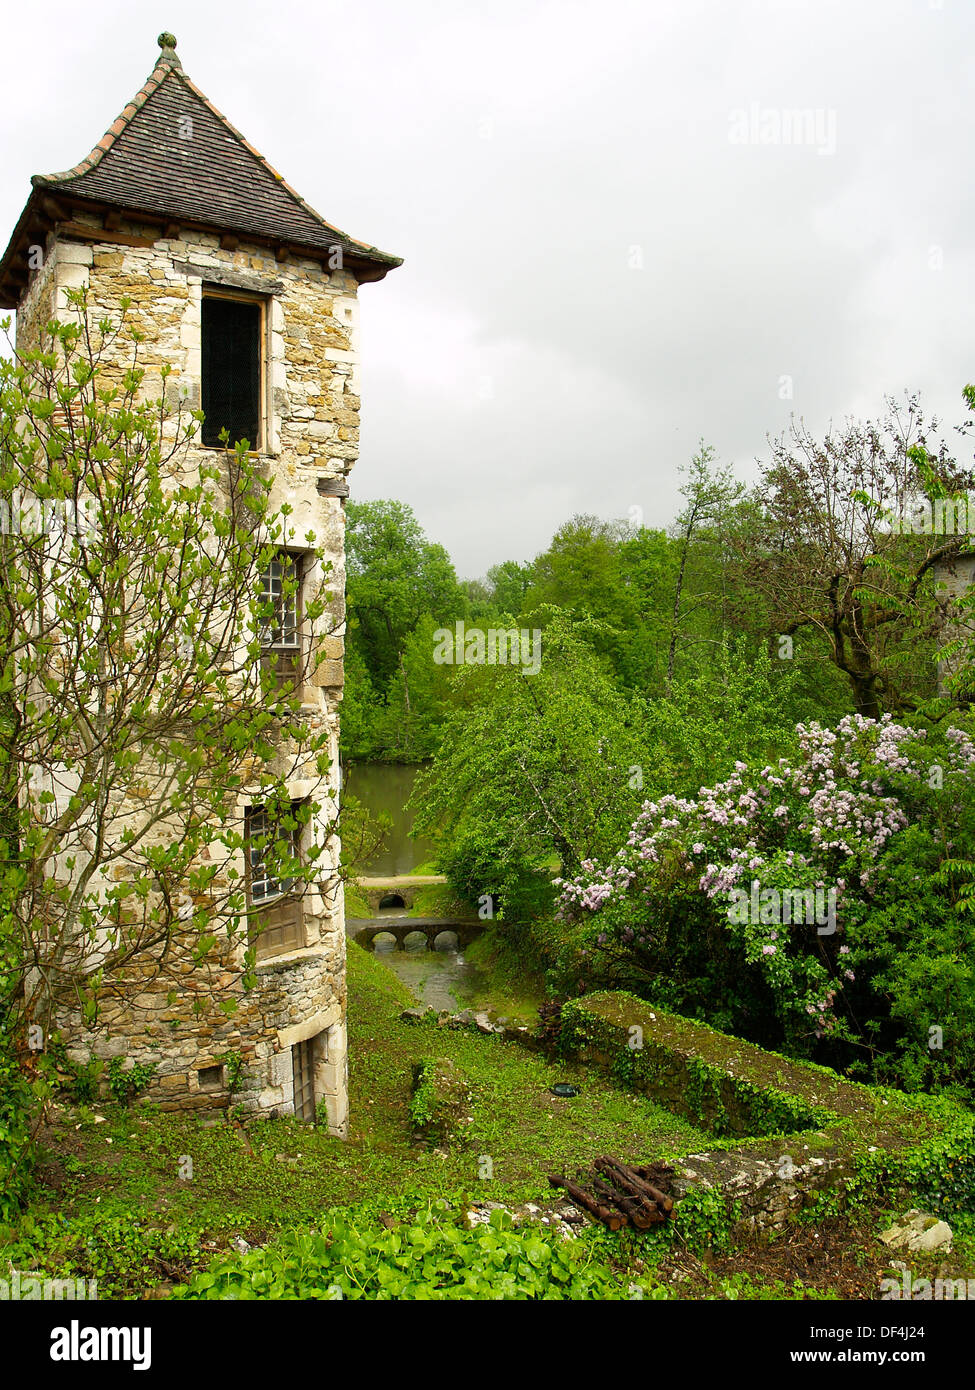 A tower in the prettiest village in France,Carennac - Stock Image